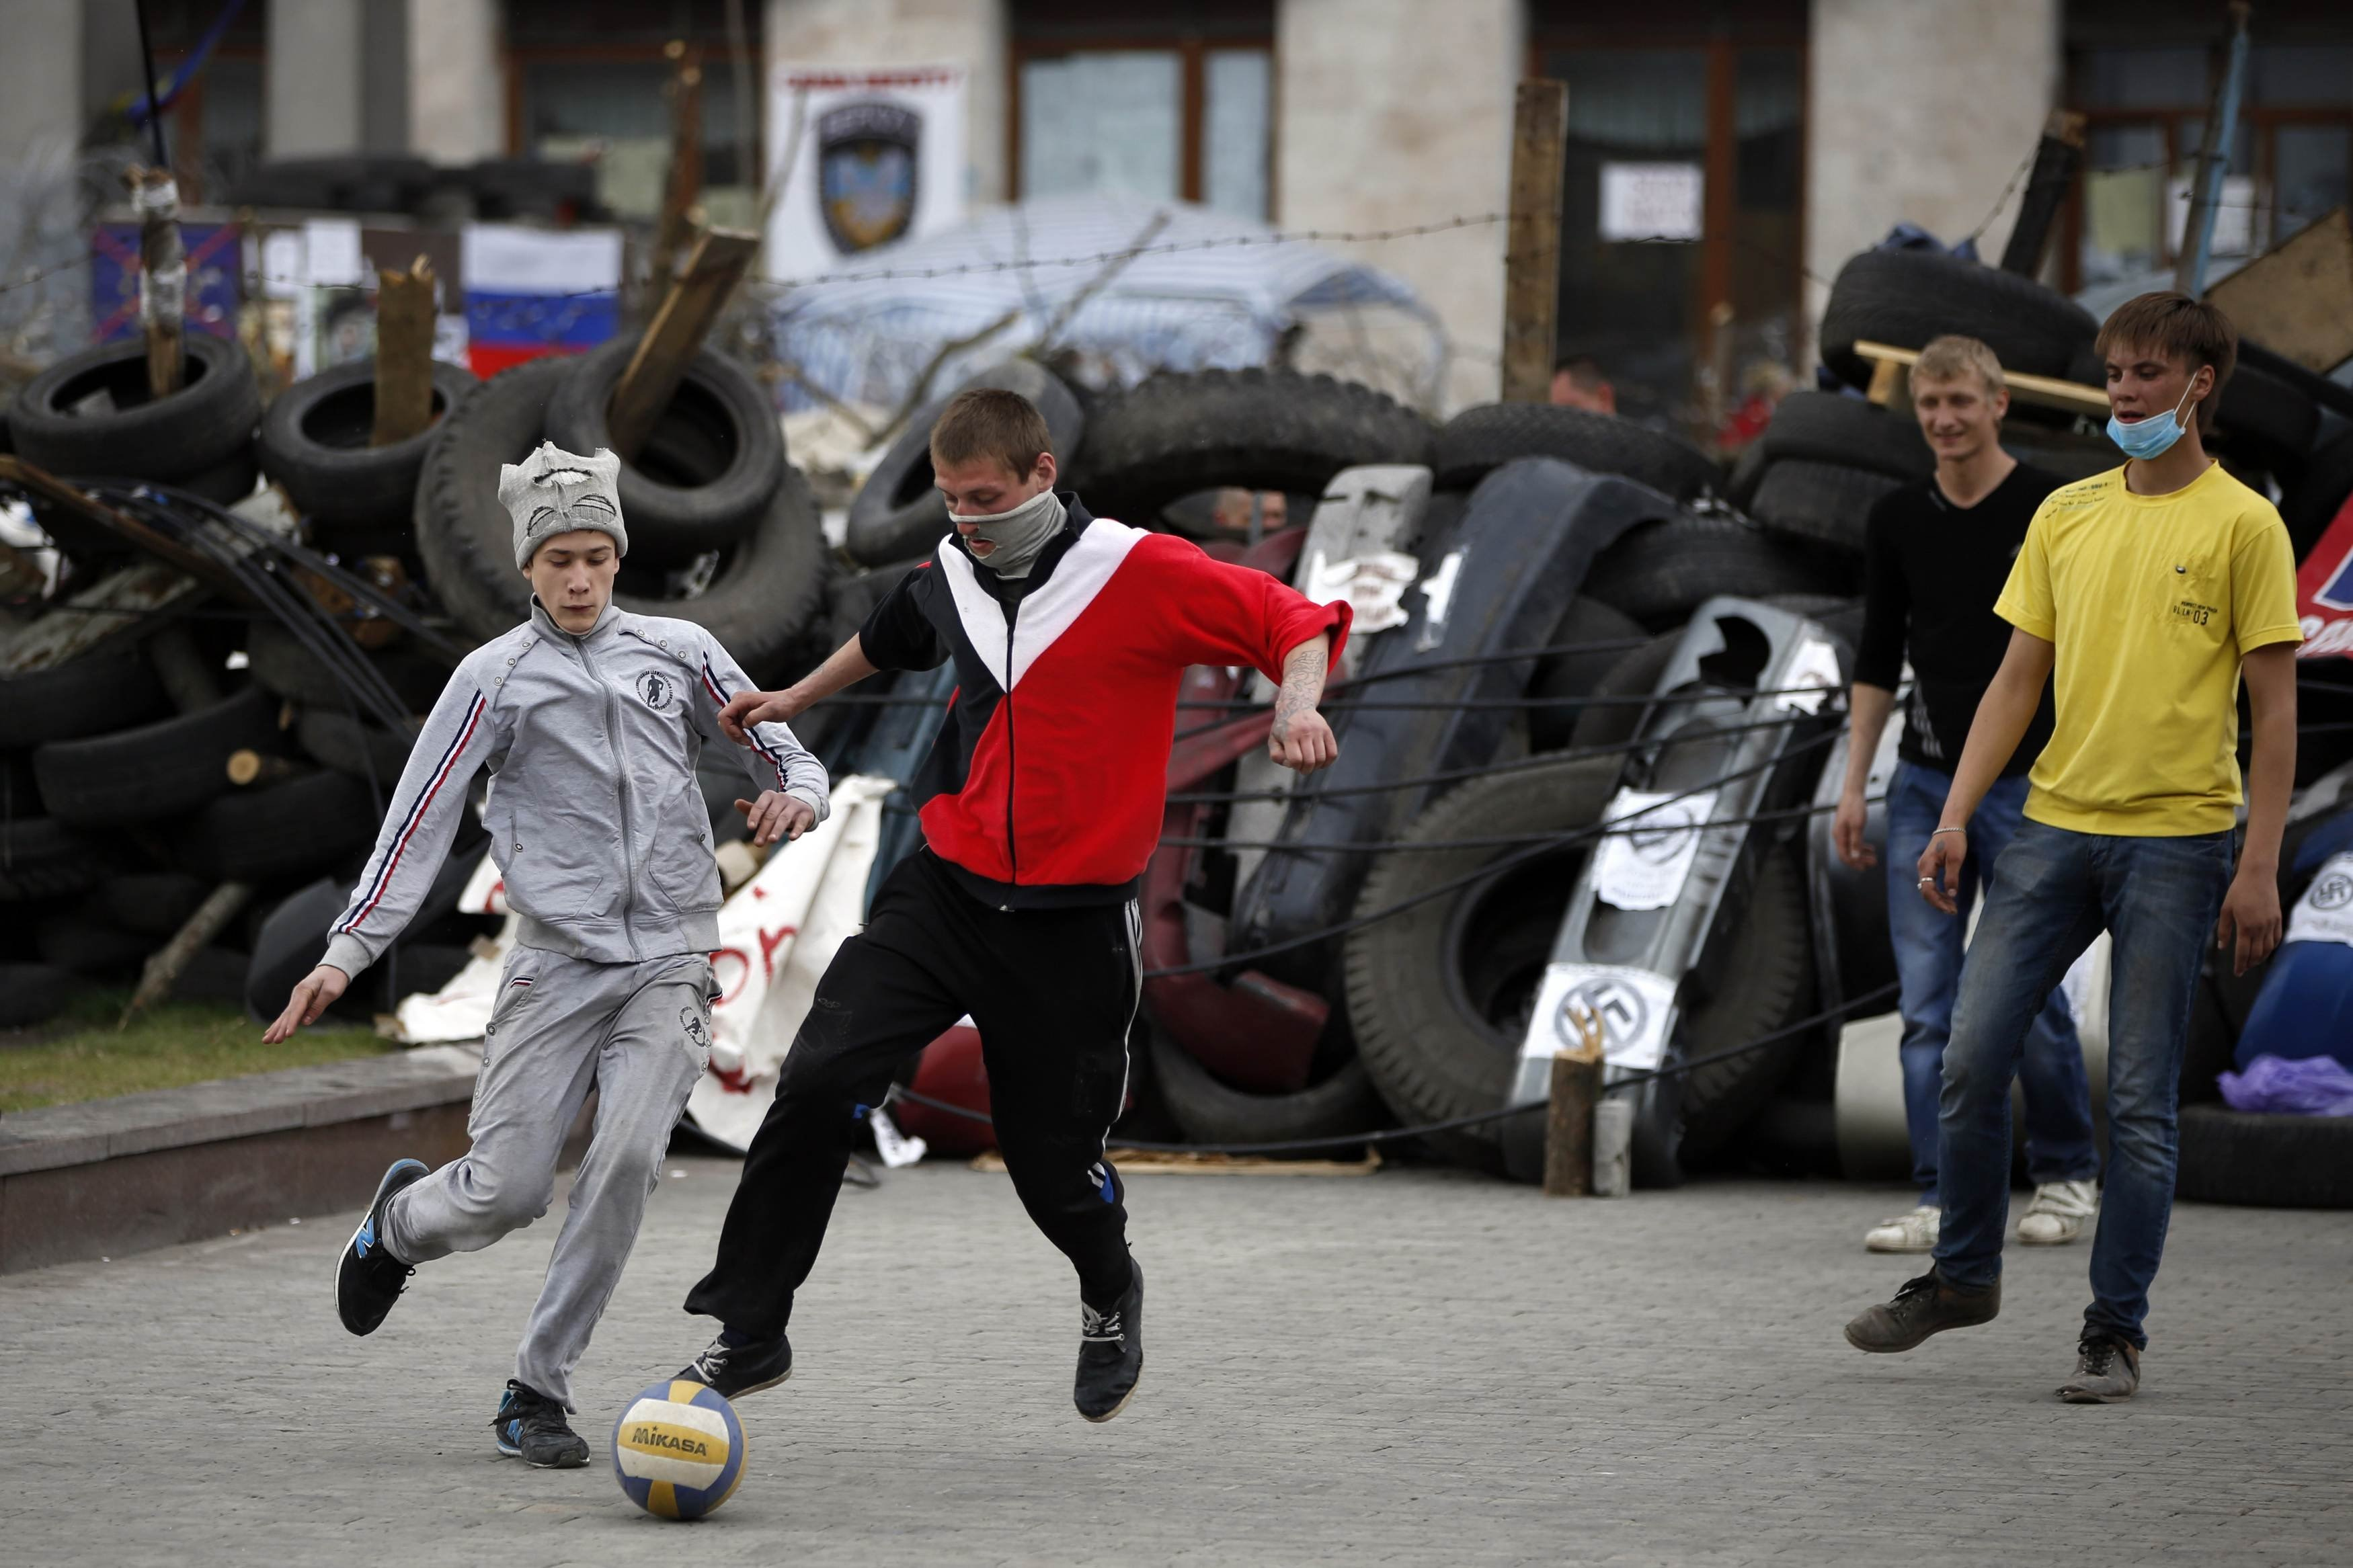 Pro-Russian protesters play soccer in front of a barricade outside a regional government building in Donetsk, eastern Ukraine April 19, 2014.